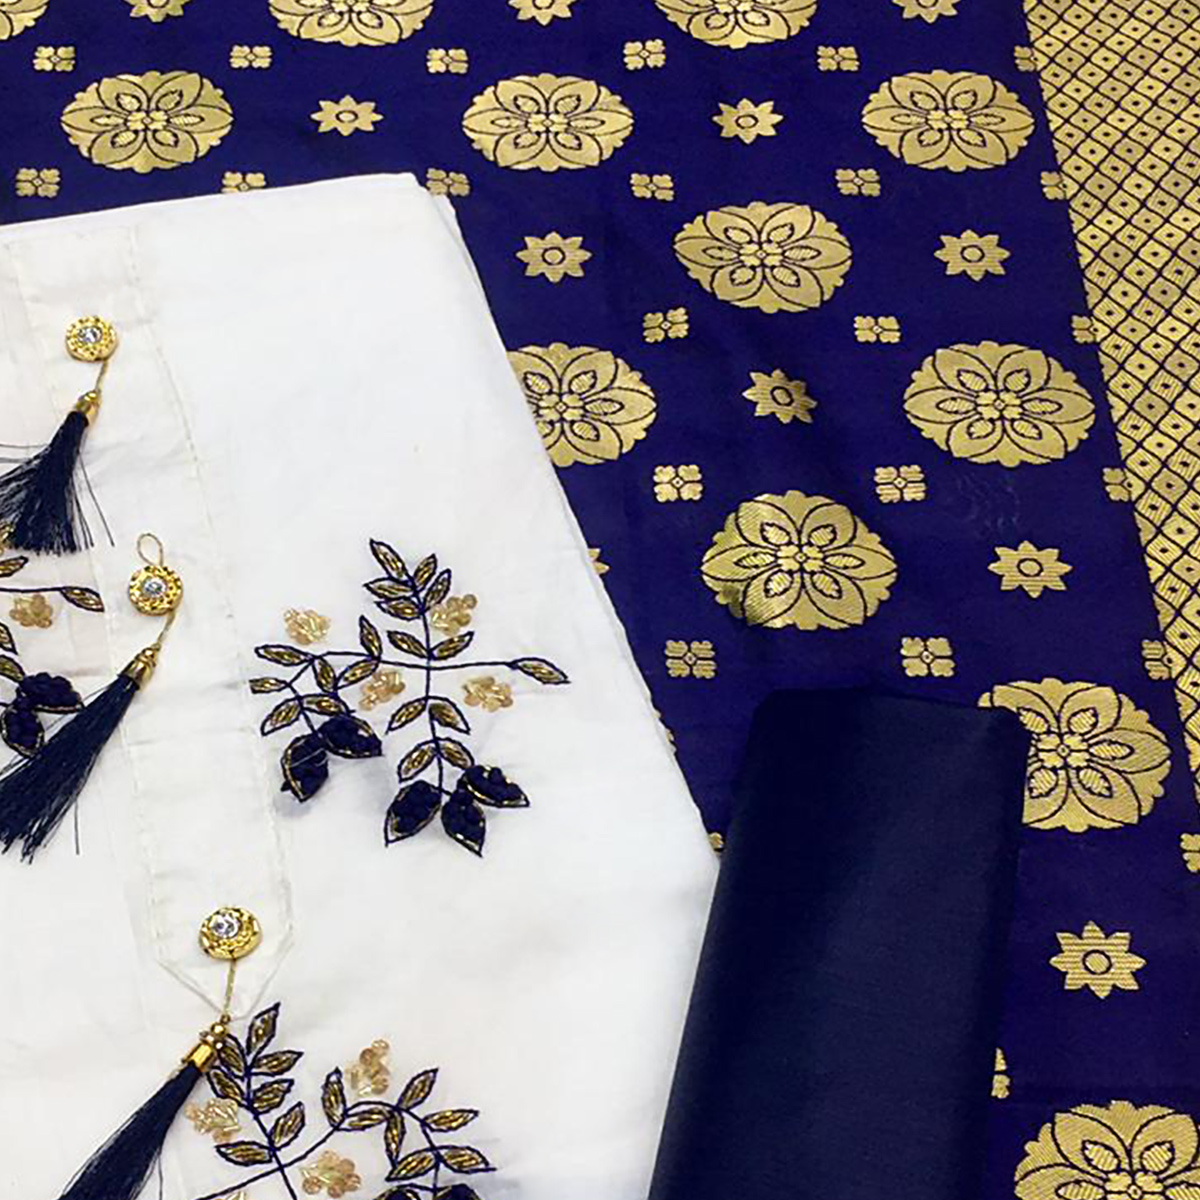 Classy White-Blue Colored Partywear Embroidered Cotton Dress Material With Banarasi Silk Dupatta